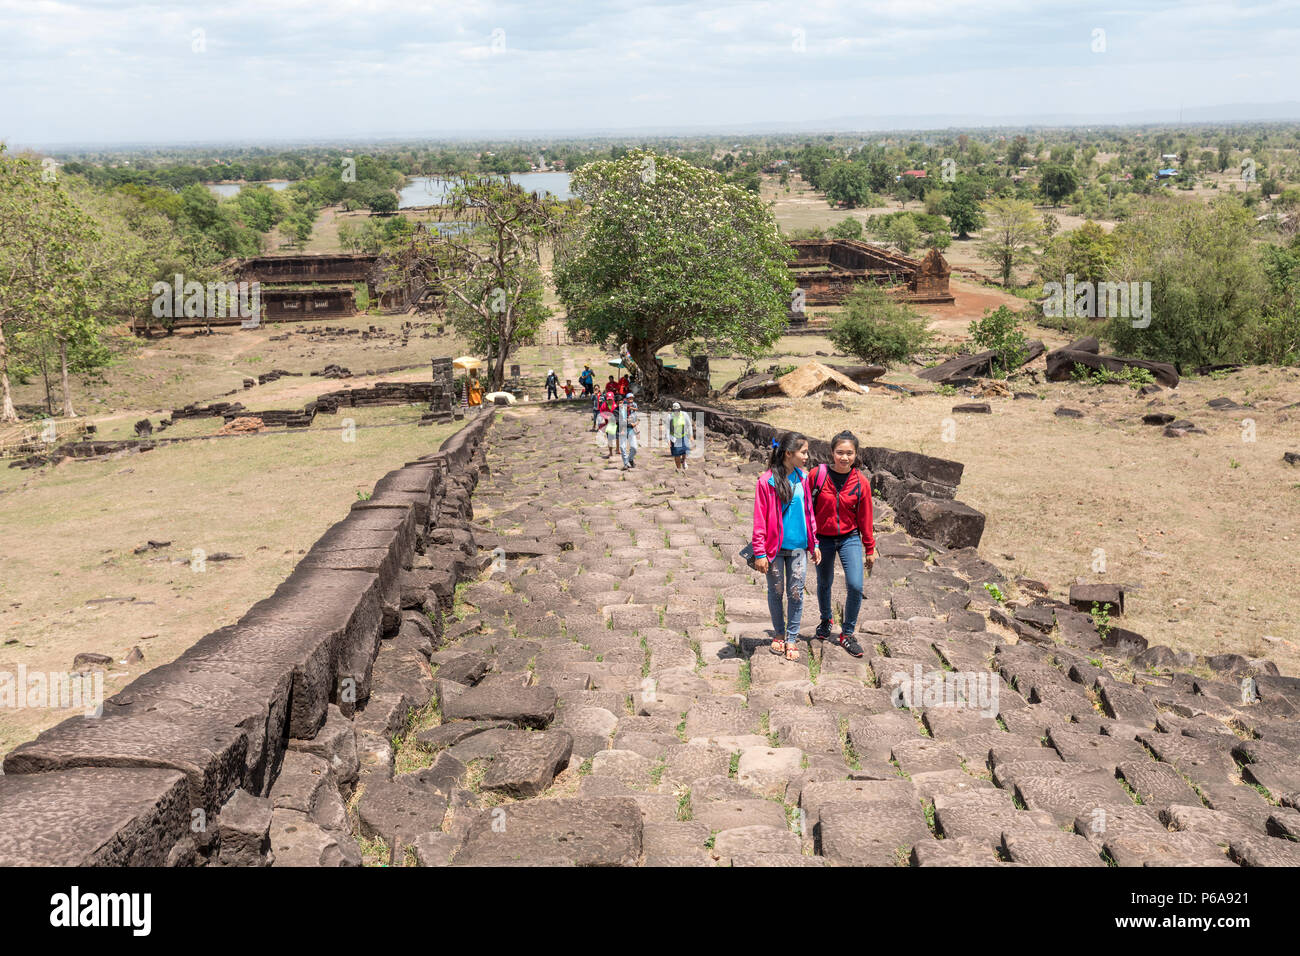 People ascending the walkway to the temple at Wat Pho (or Wat Phu) temple ruin UNESCO site, Champasak, Laos - Stock Image